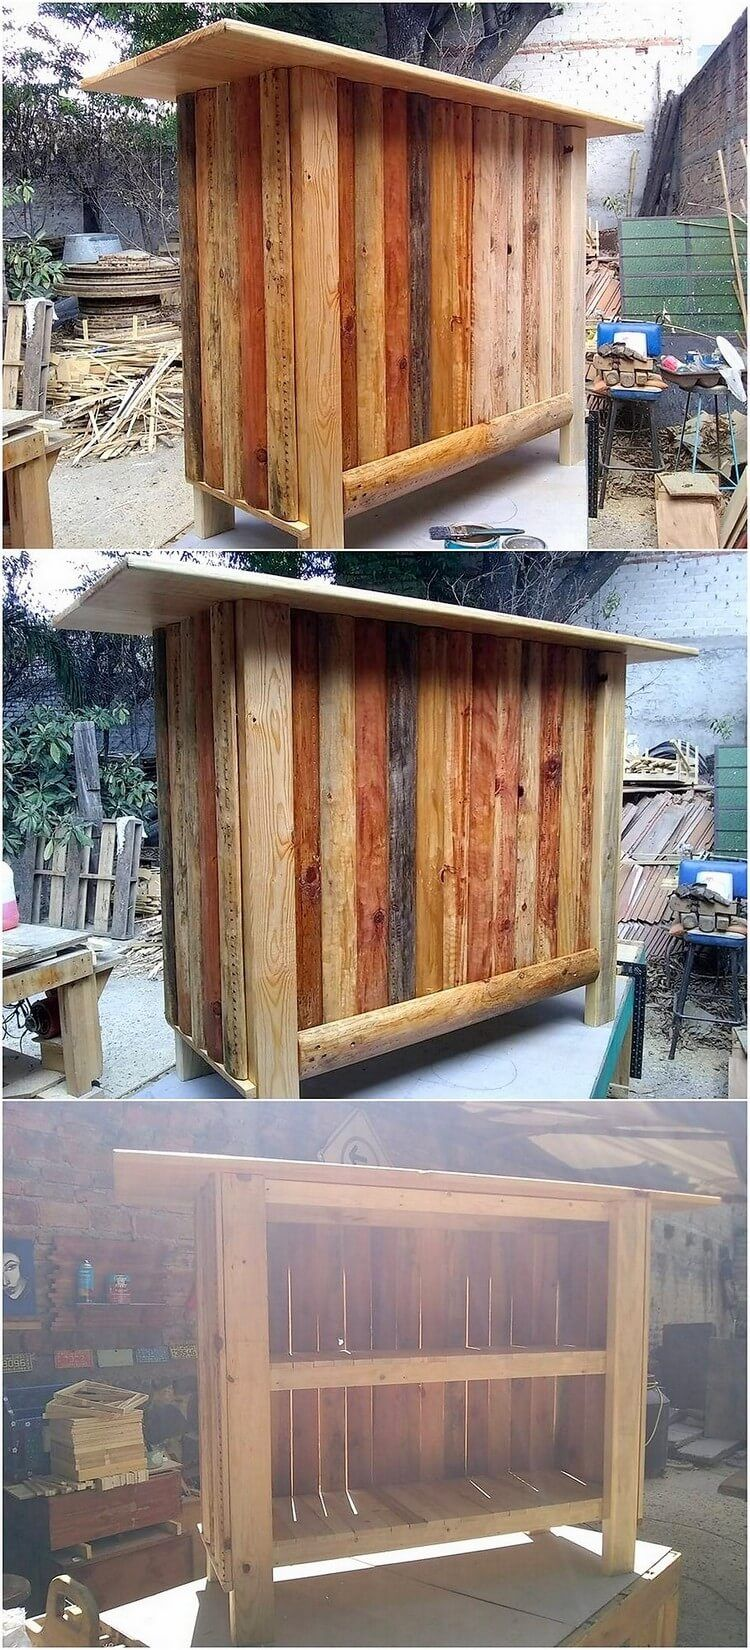 Accomplished Wood Pallets Recycling Ideas   Wood pallets ...